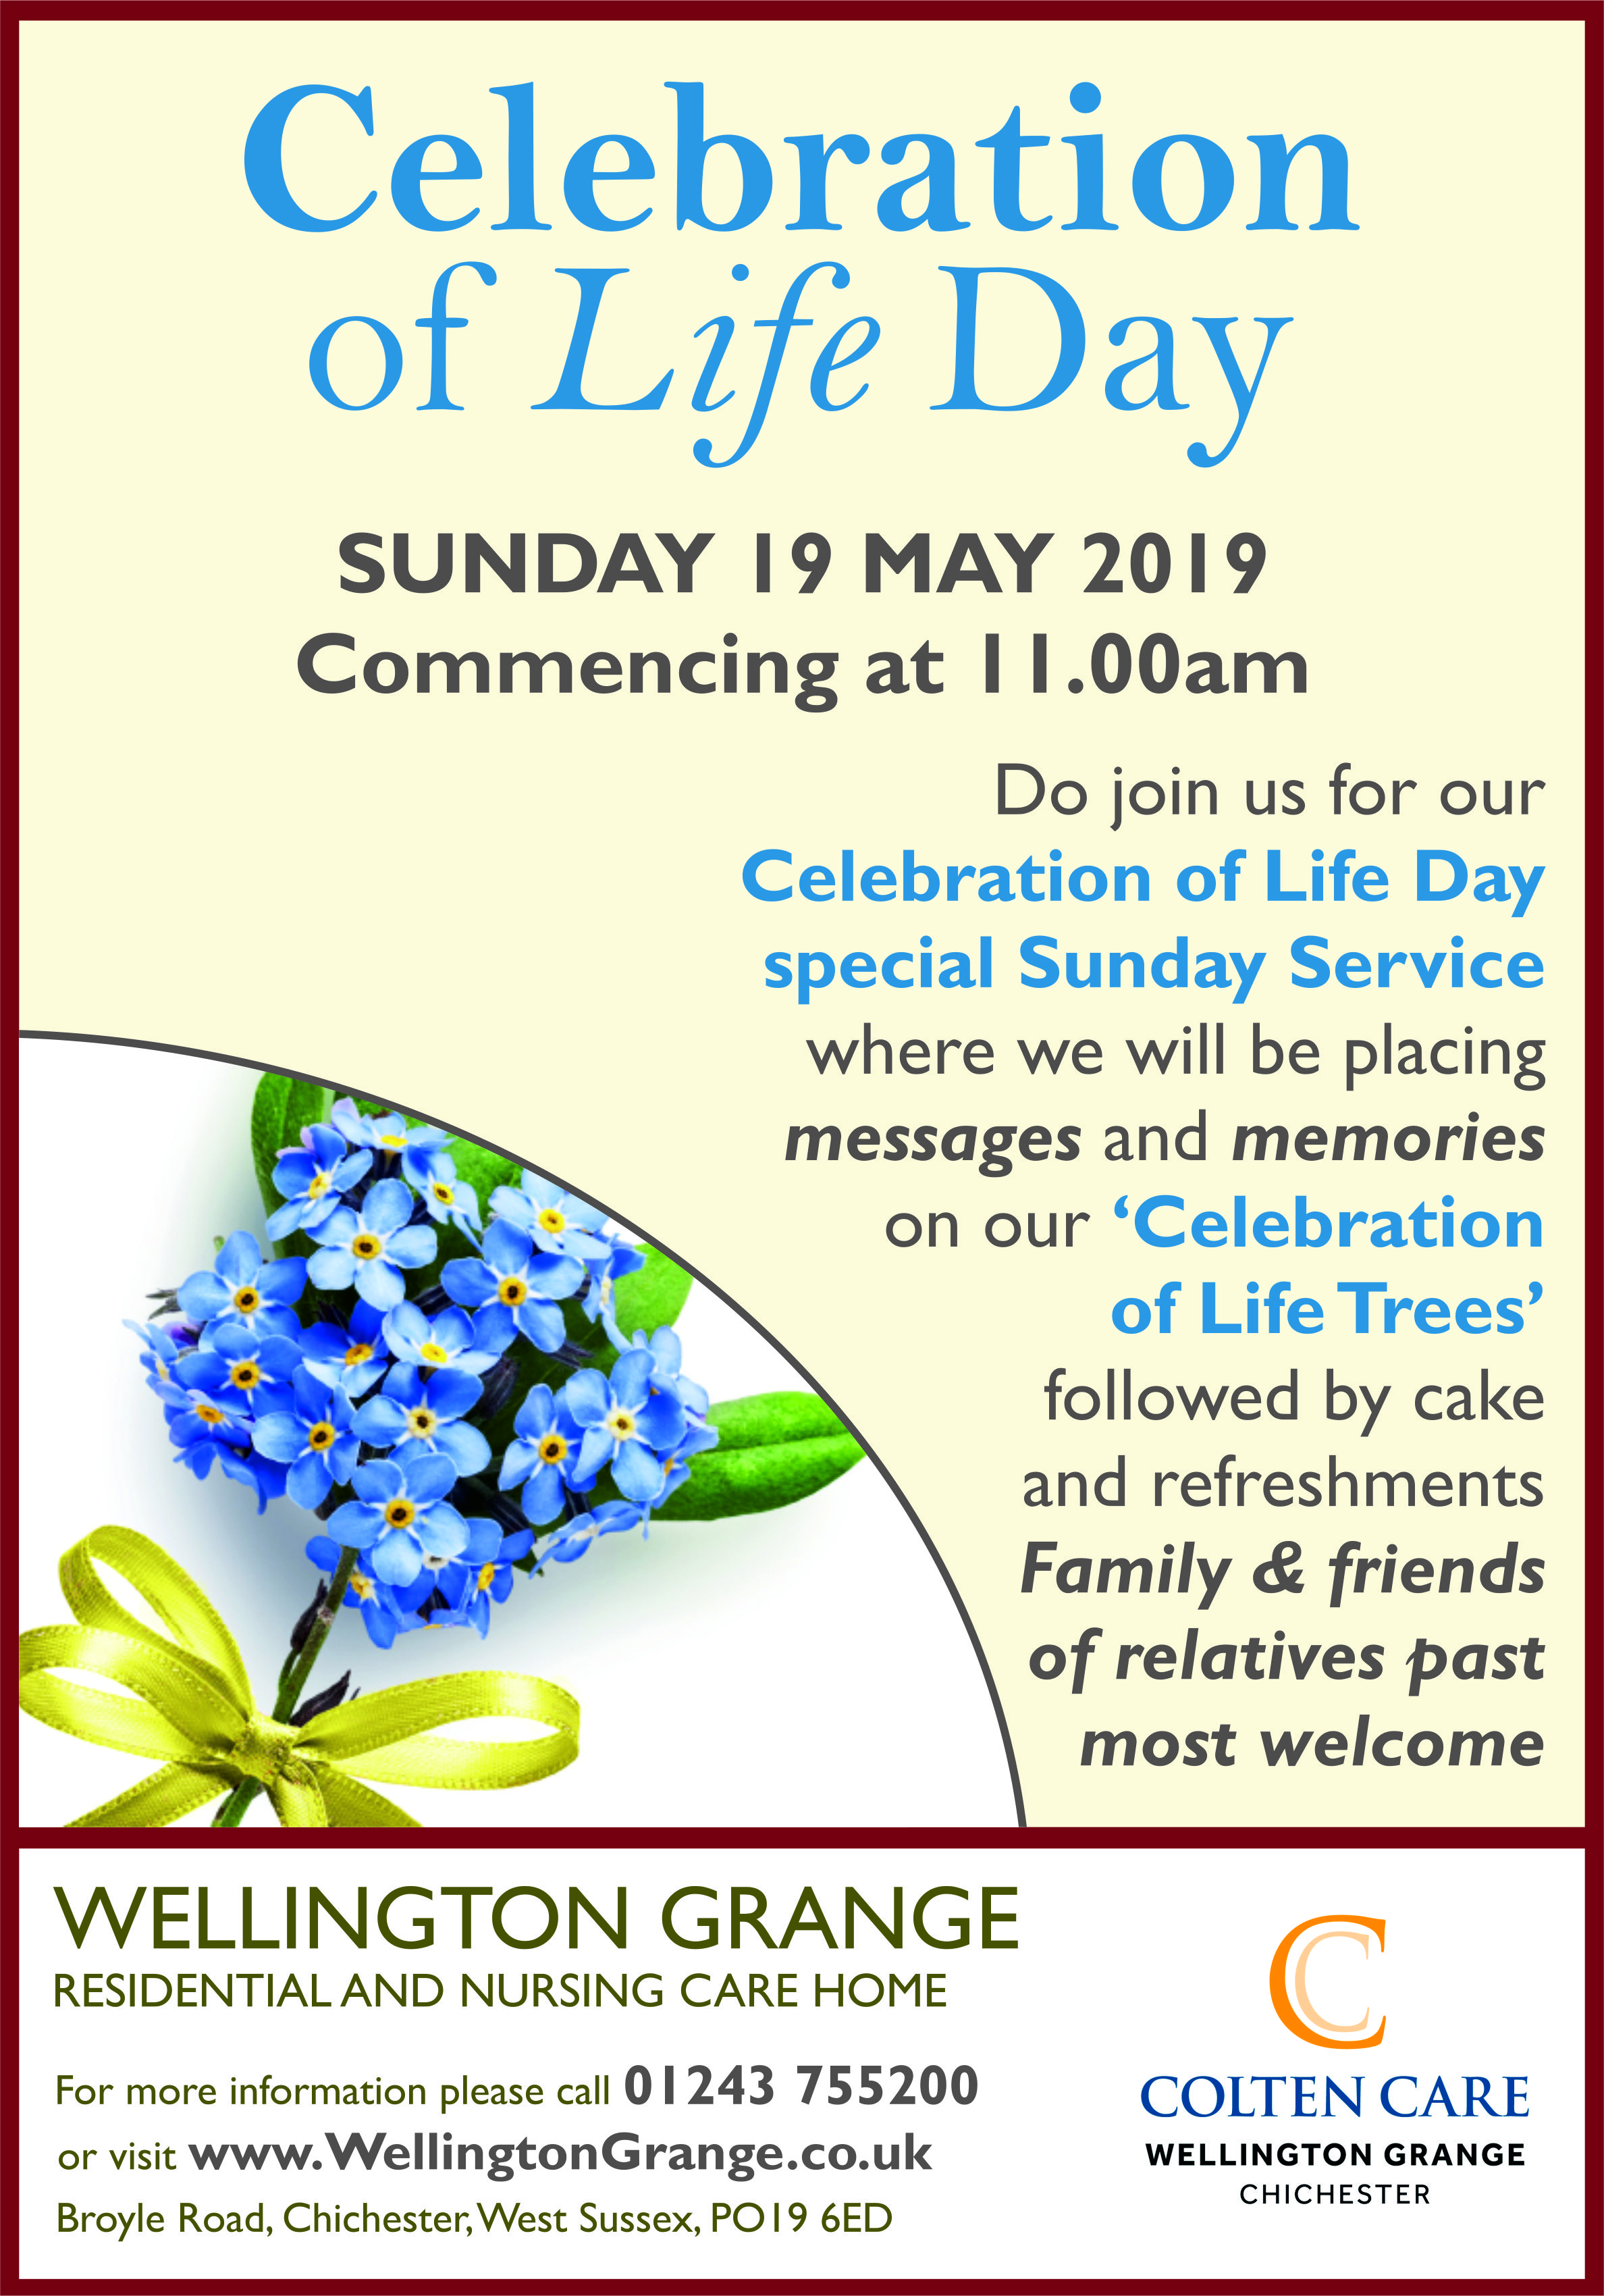 Wellington Grange - Celebration of Life Day Poster 19 May - 16 Apr 2019